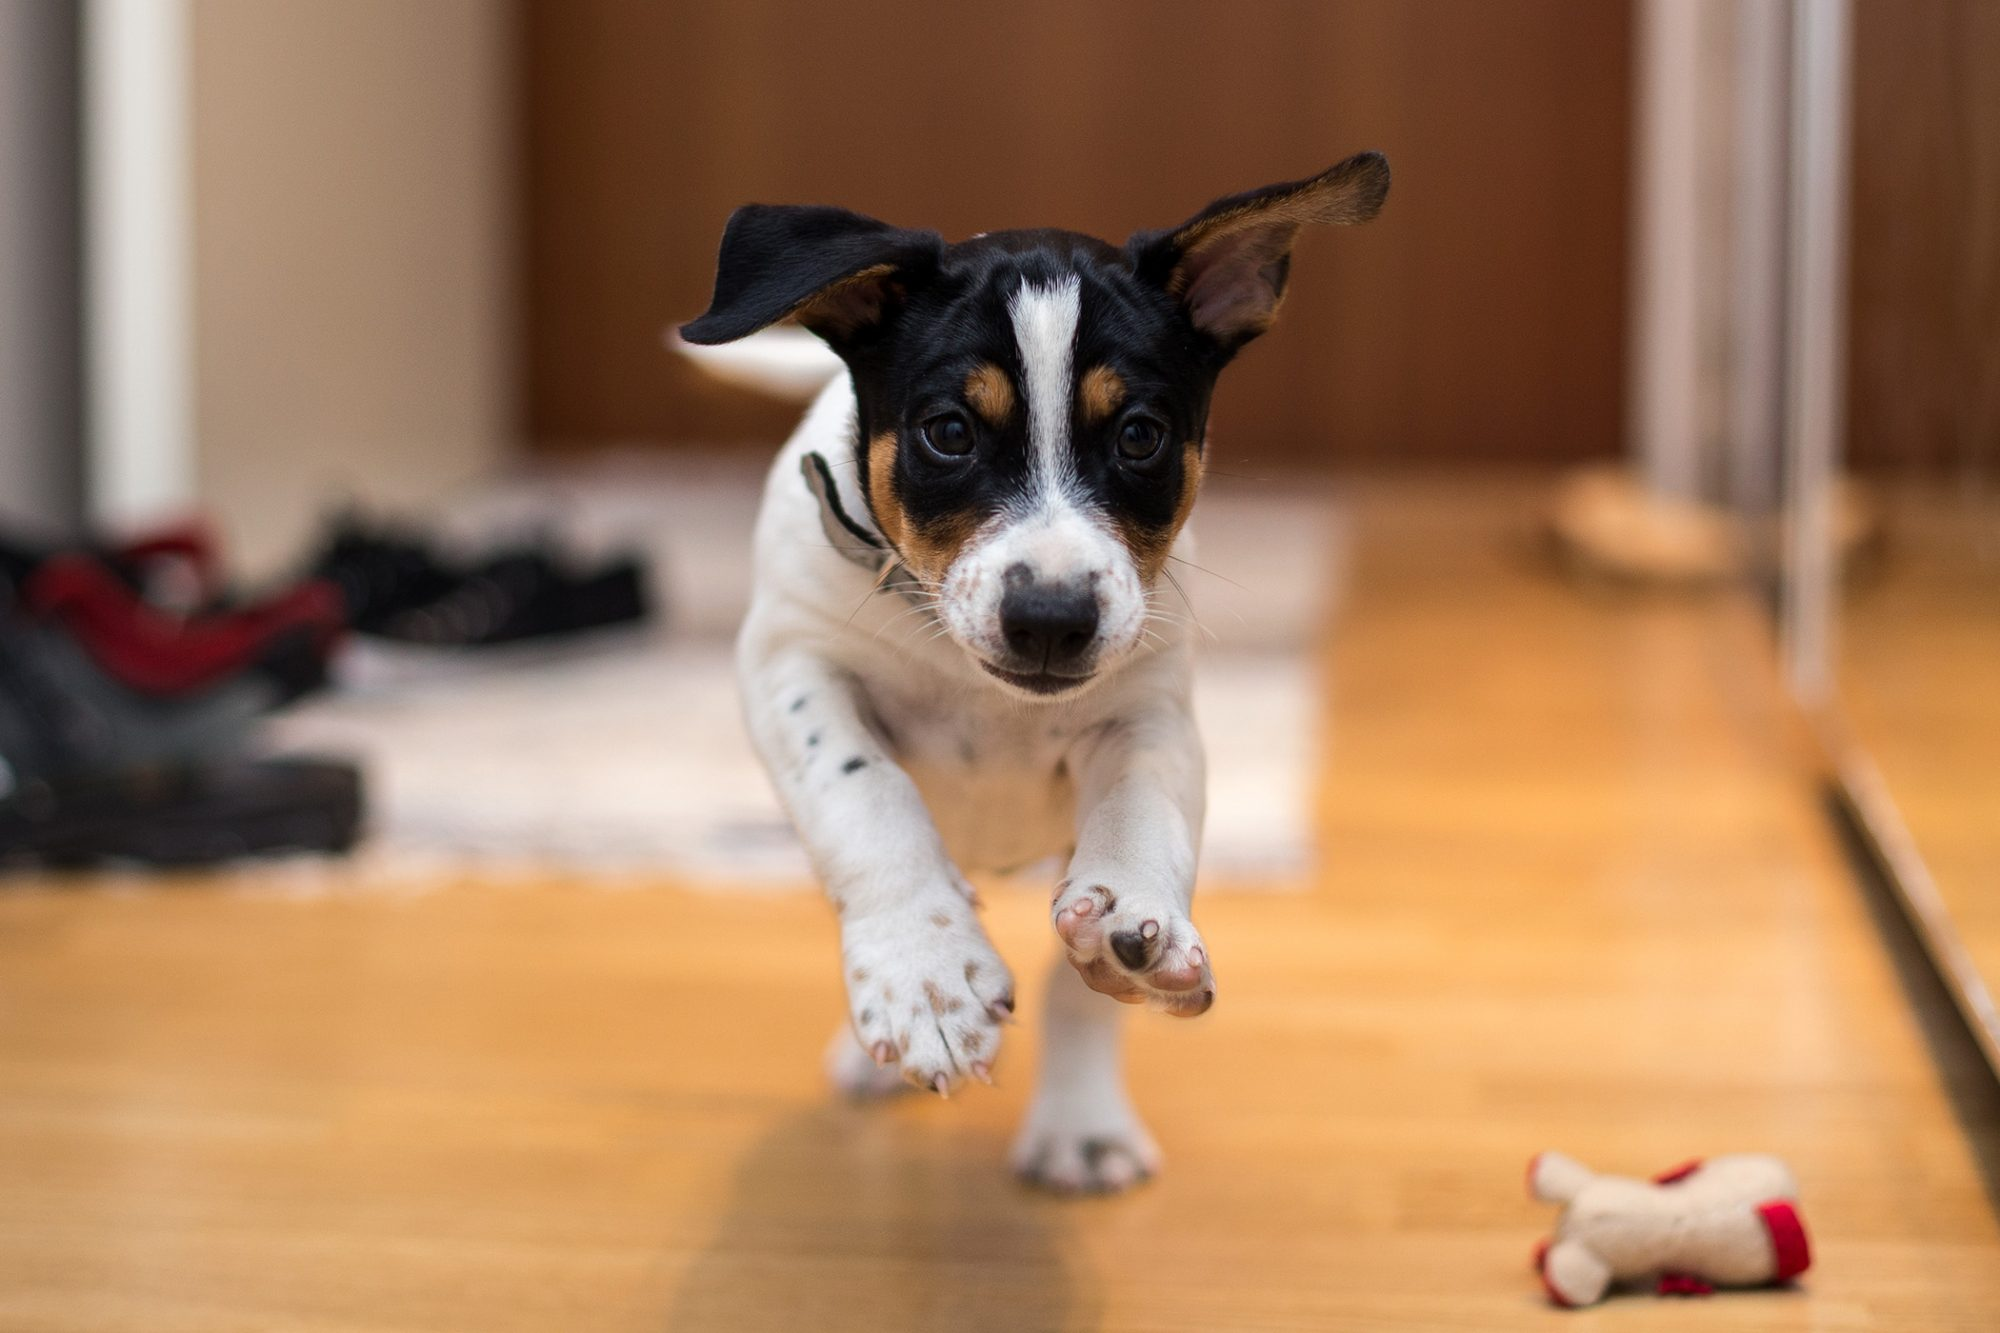 Dog running in house